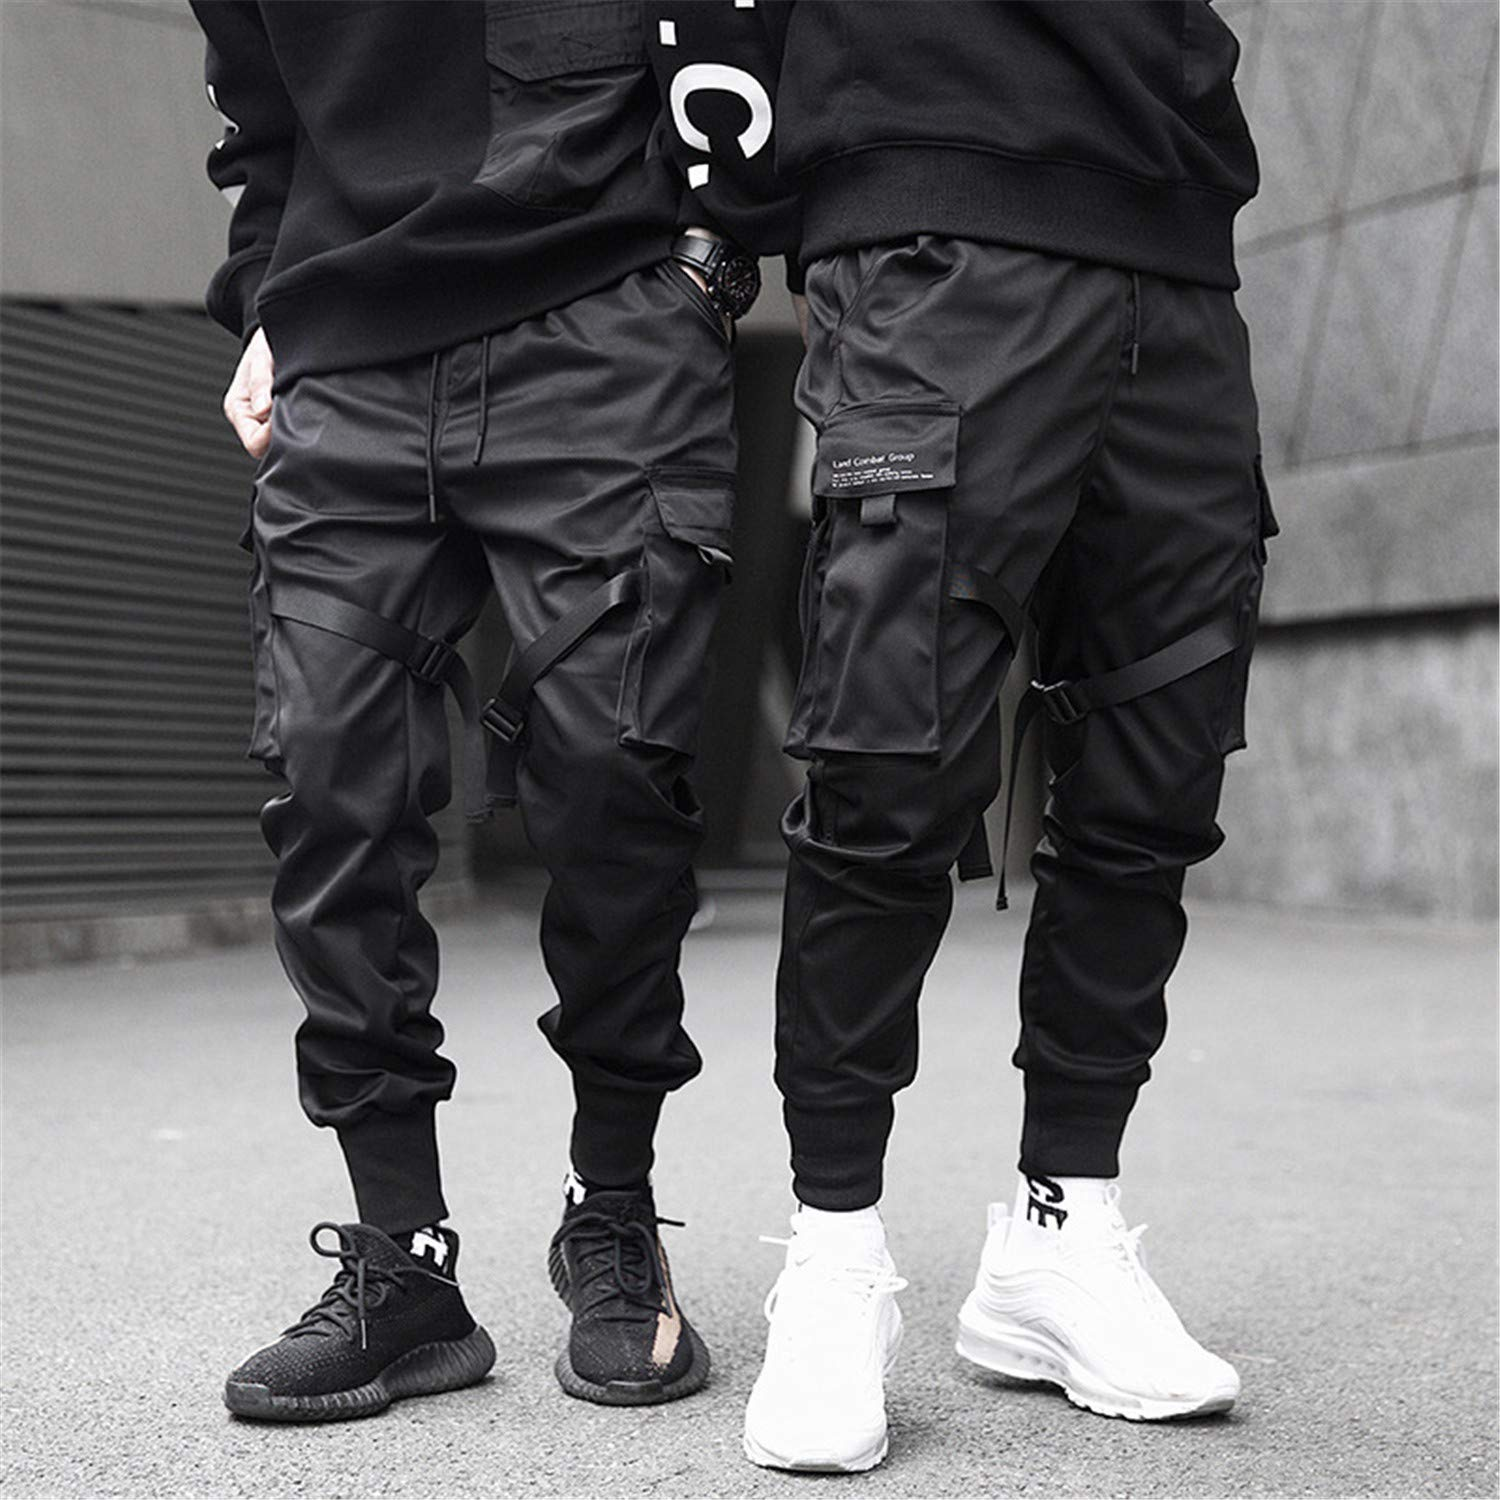 MERRYDAY Men Multi-Pocket Elastic Waist Harem Pant Punk Hip Hop Trousers Joggers